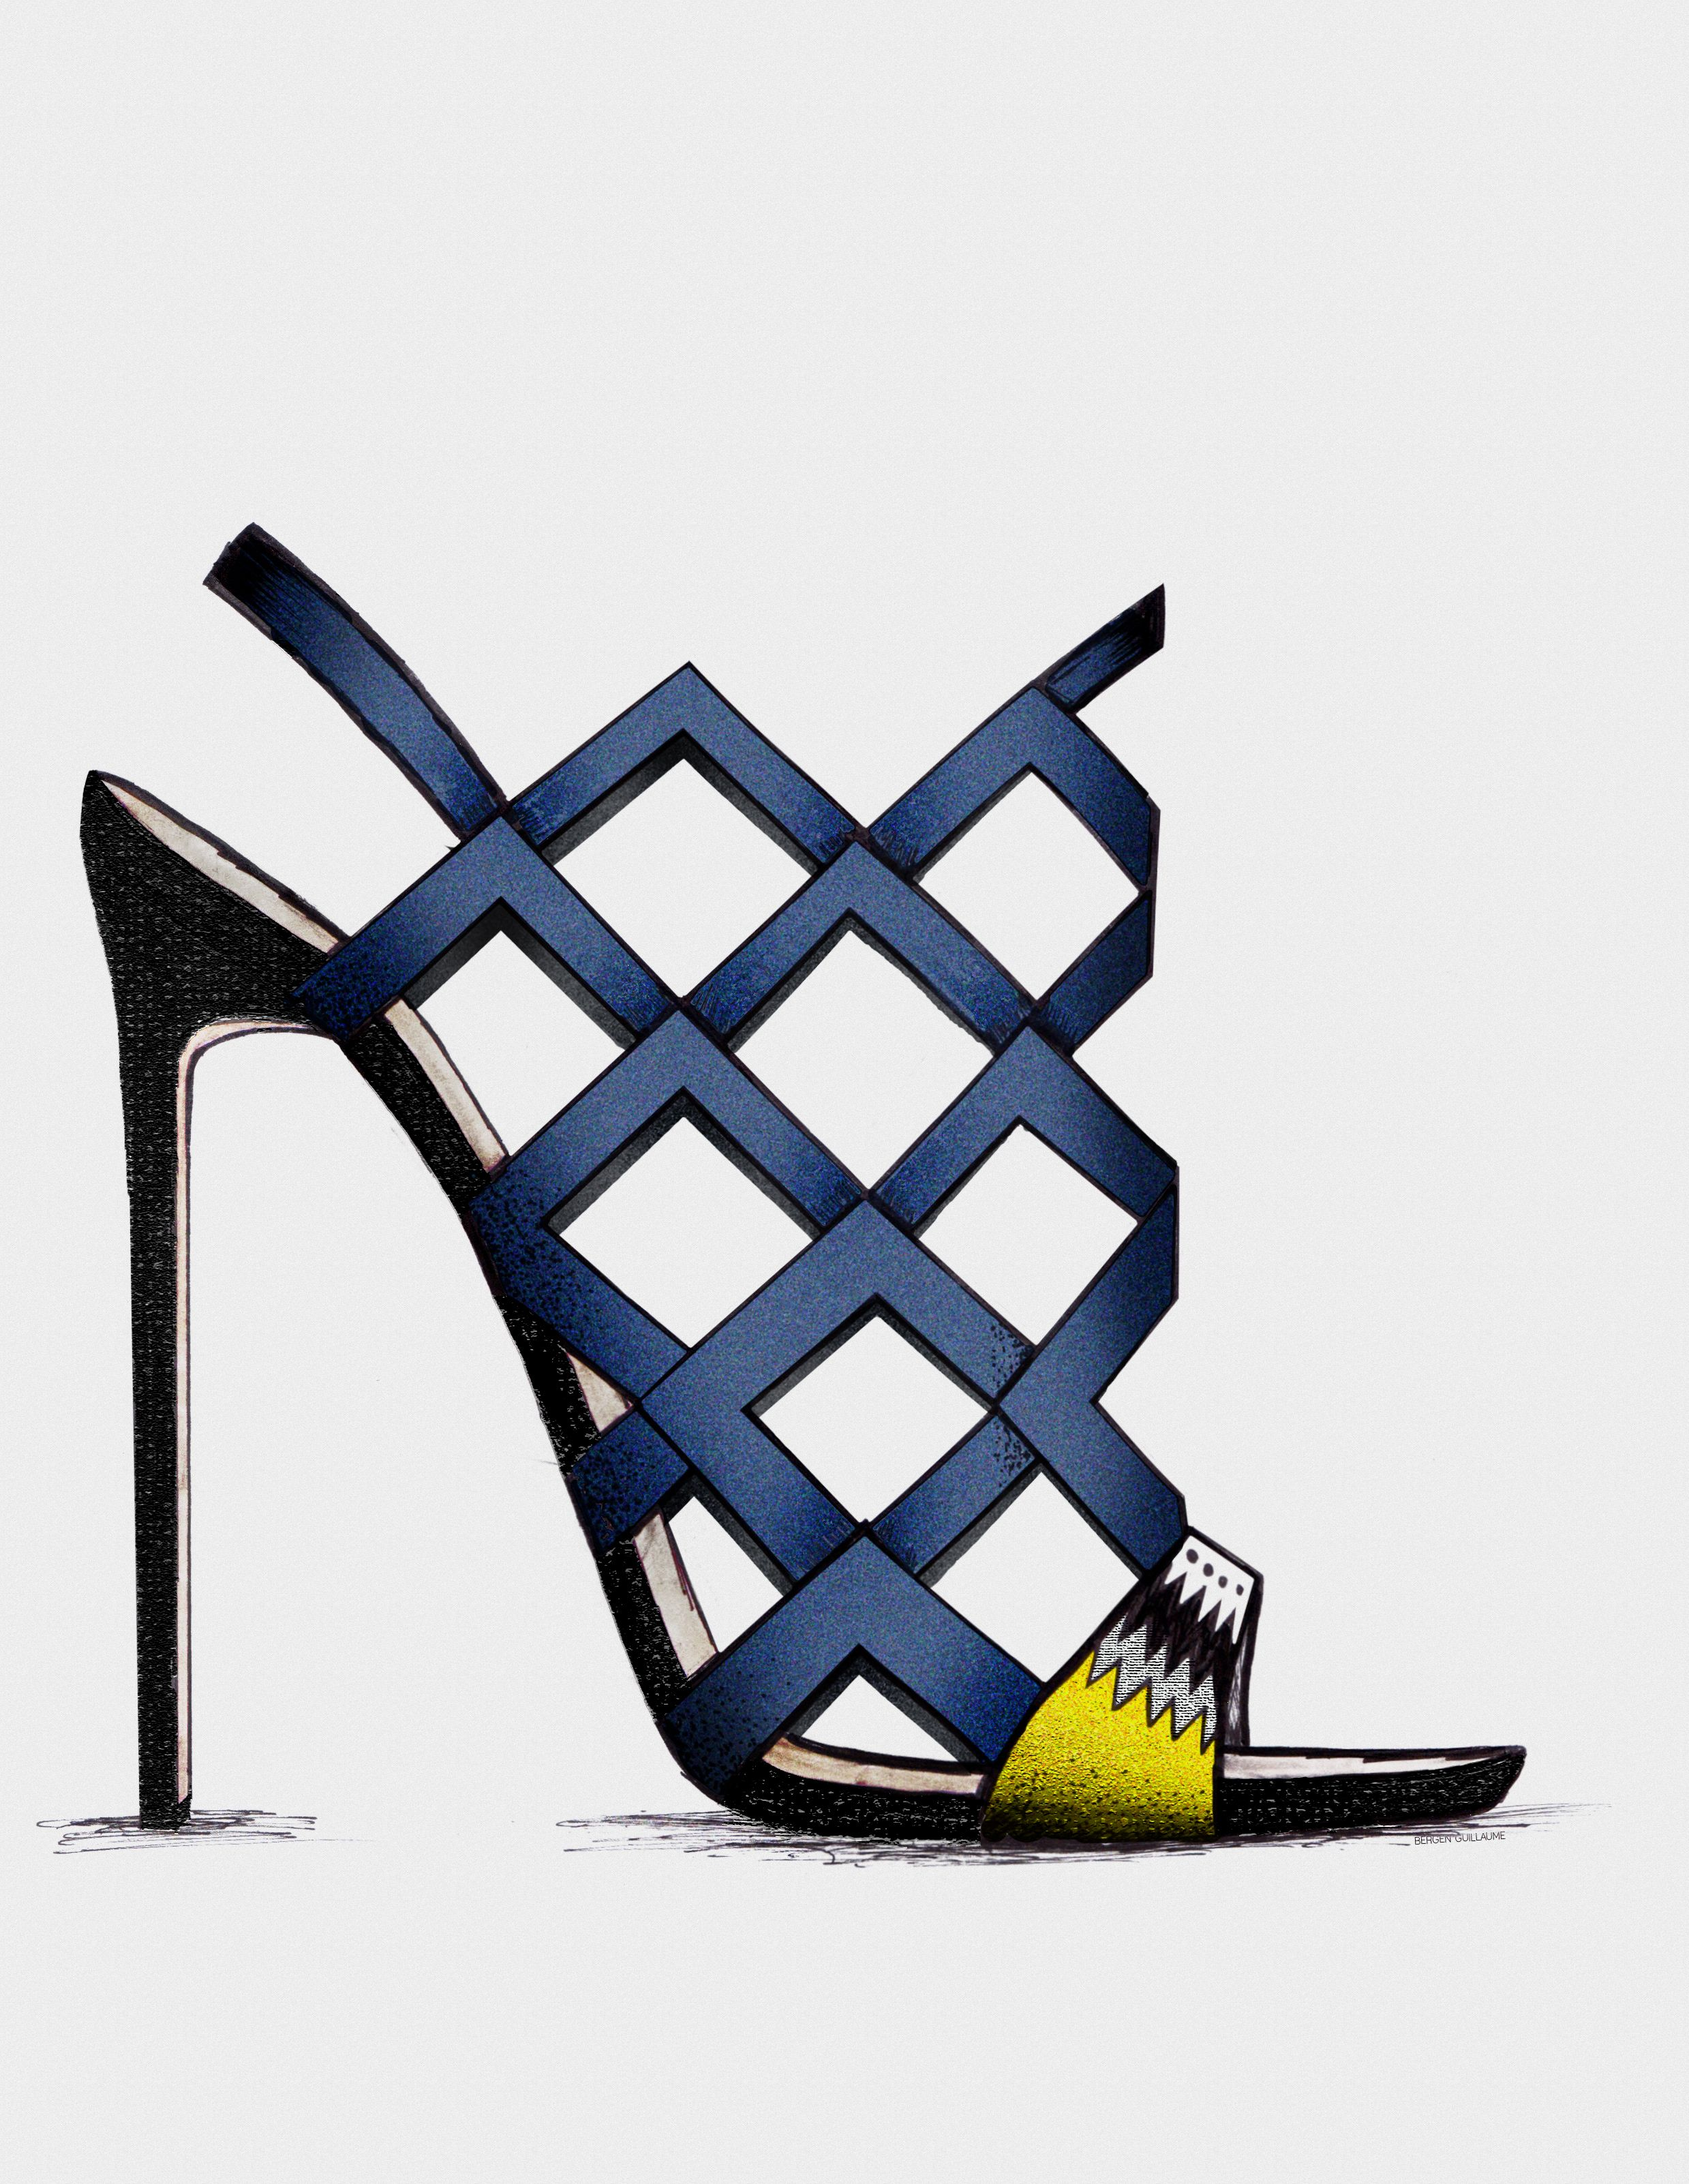 ● Malicka - Guillaume Bergen Spring /Summer '15 - Collection #guillaumebergen#Stiletto ♦F&I♦